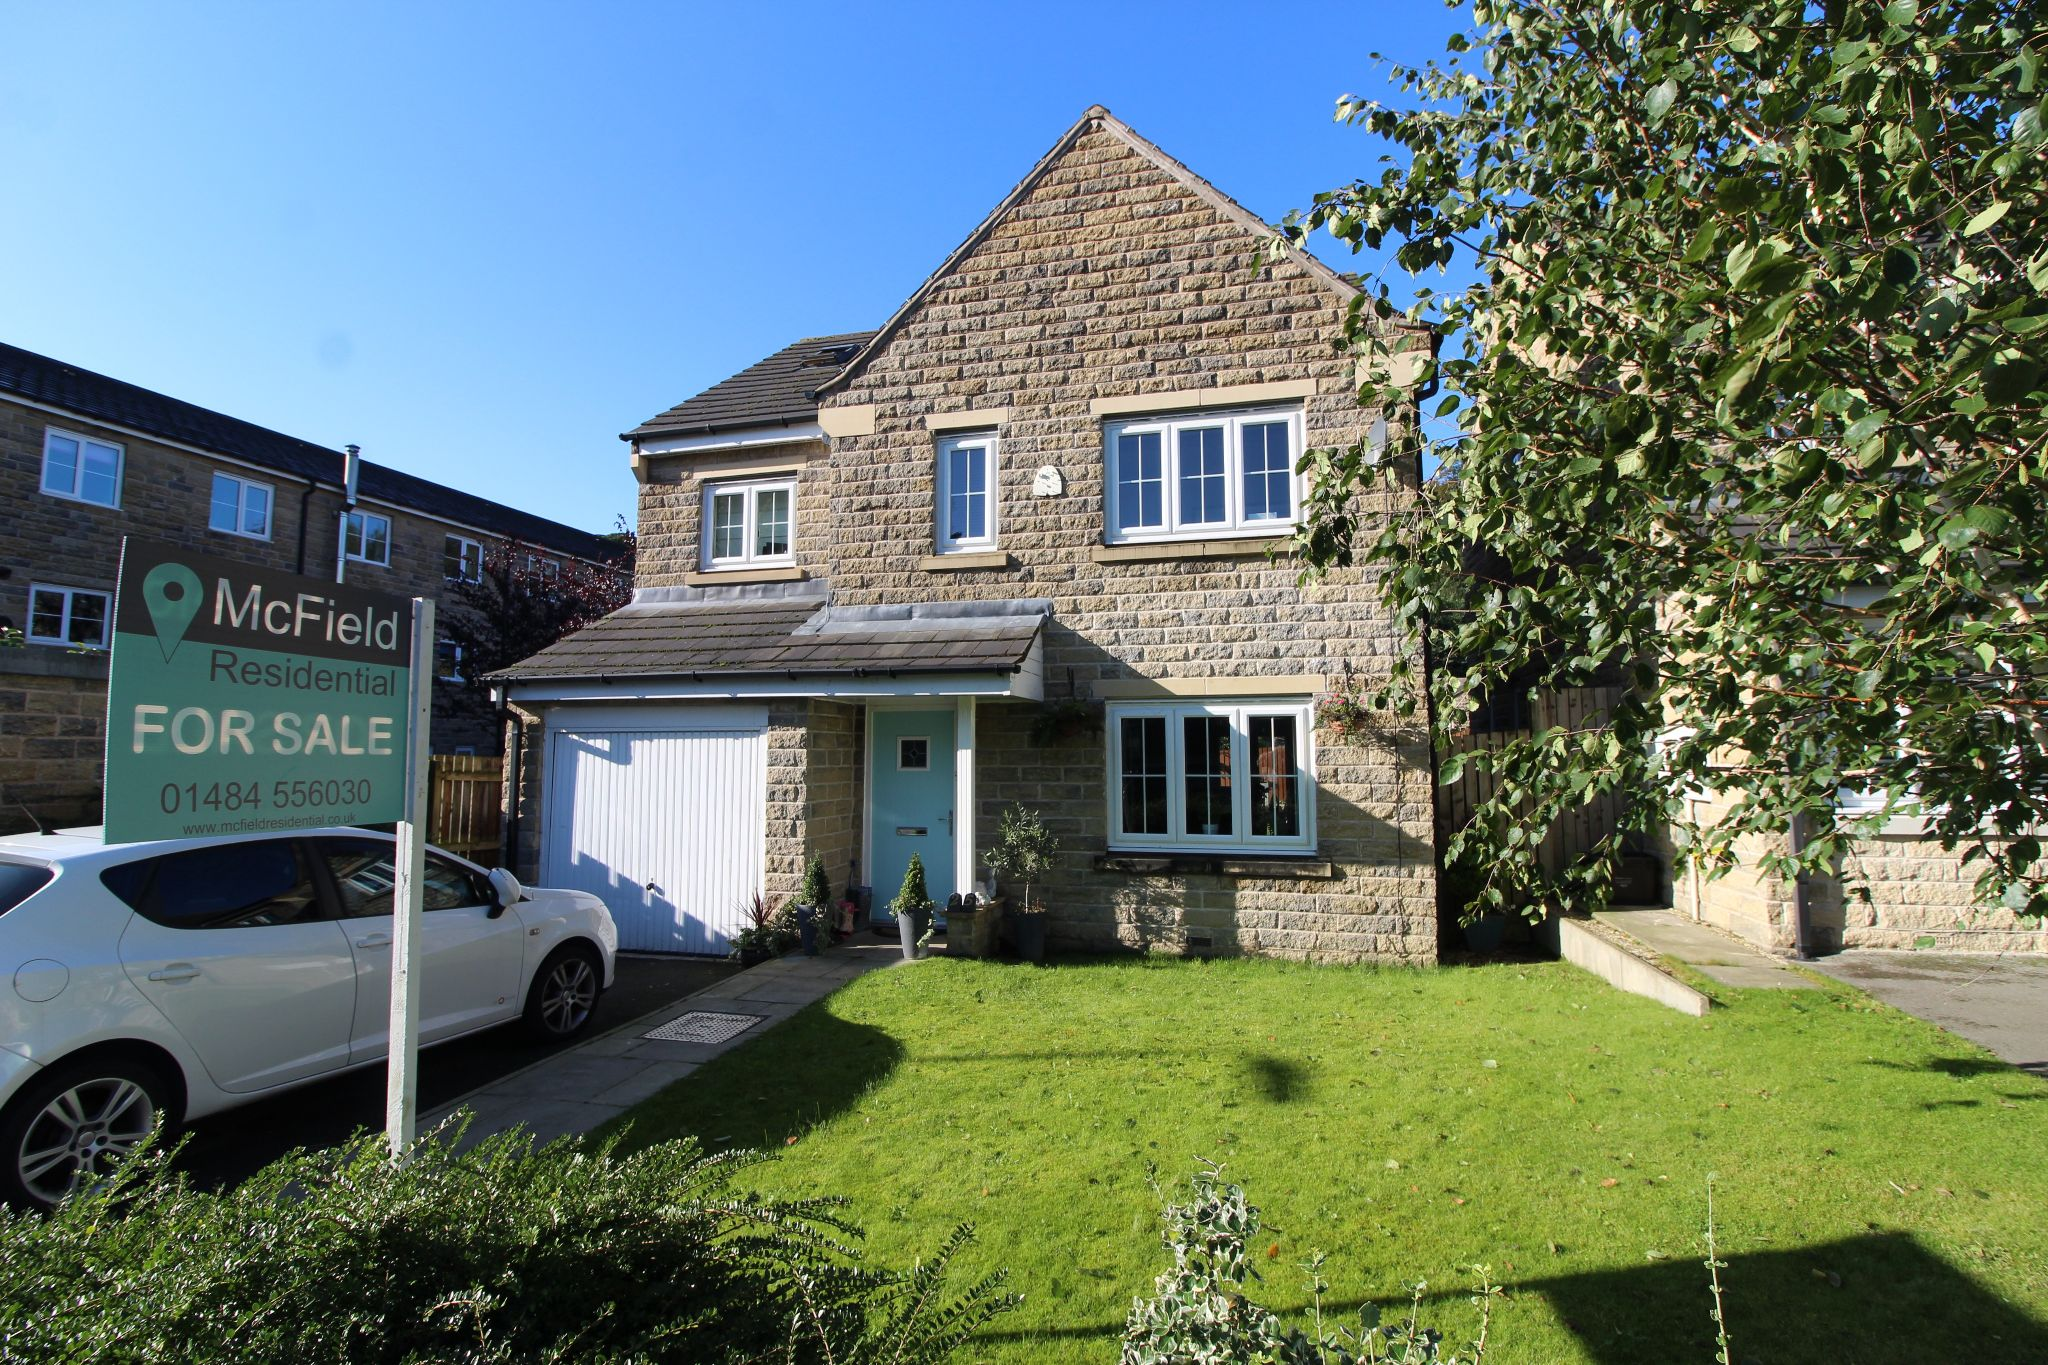 5 bedroom detached house For Sale in Halifax - Front aspect